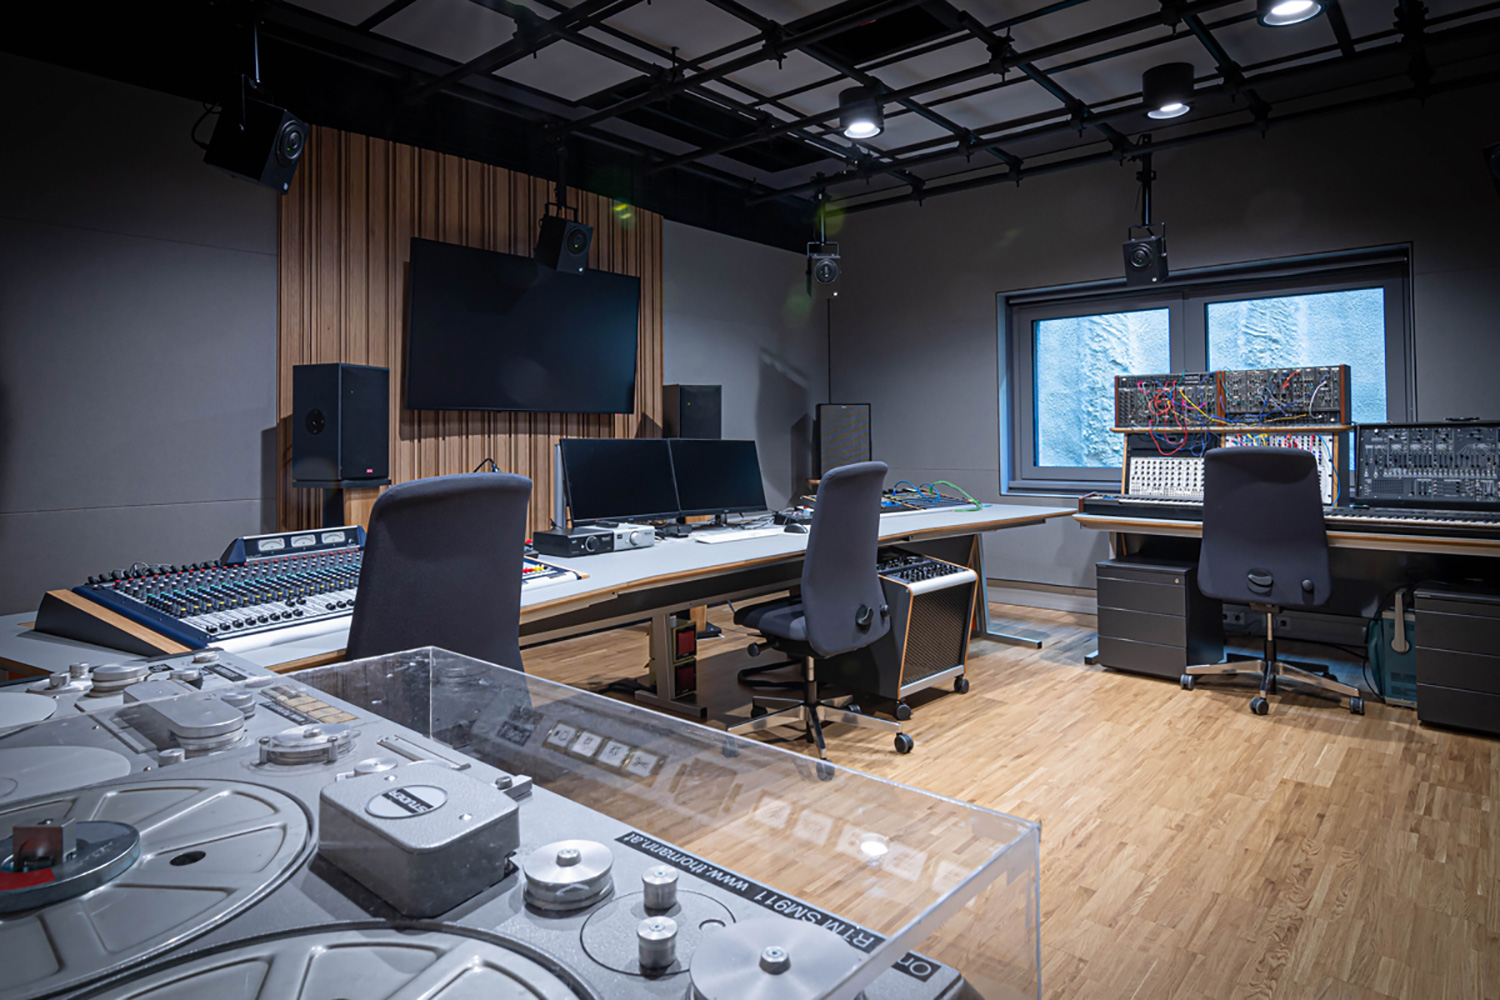 The University of Music and Performing Arts of Vienna new Future Art Lab designed by WSDG. Control Room B.